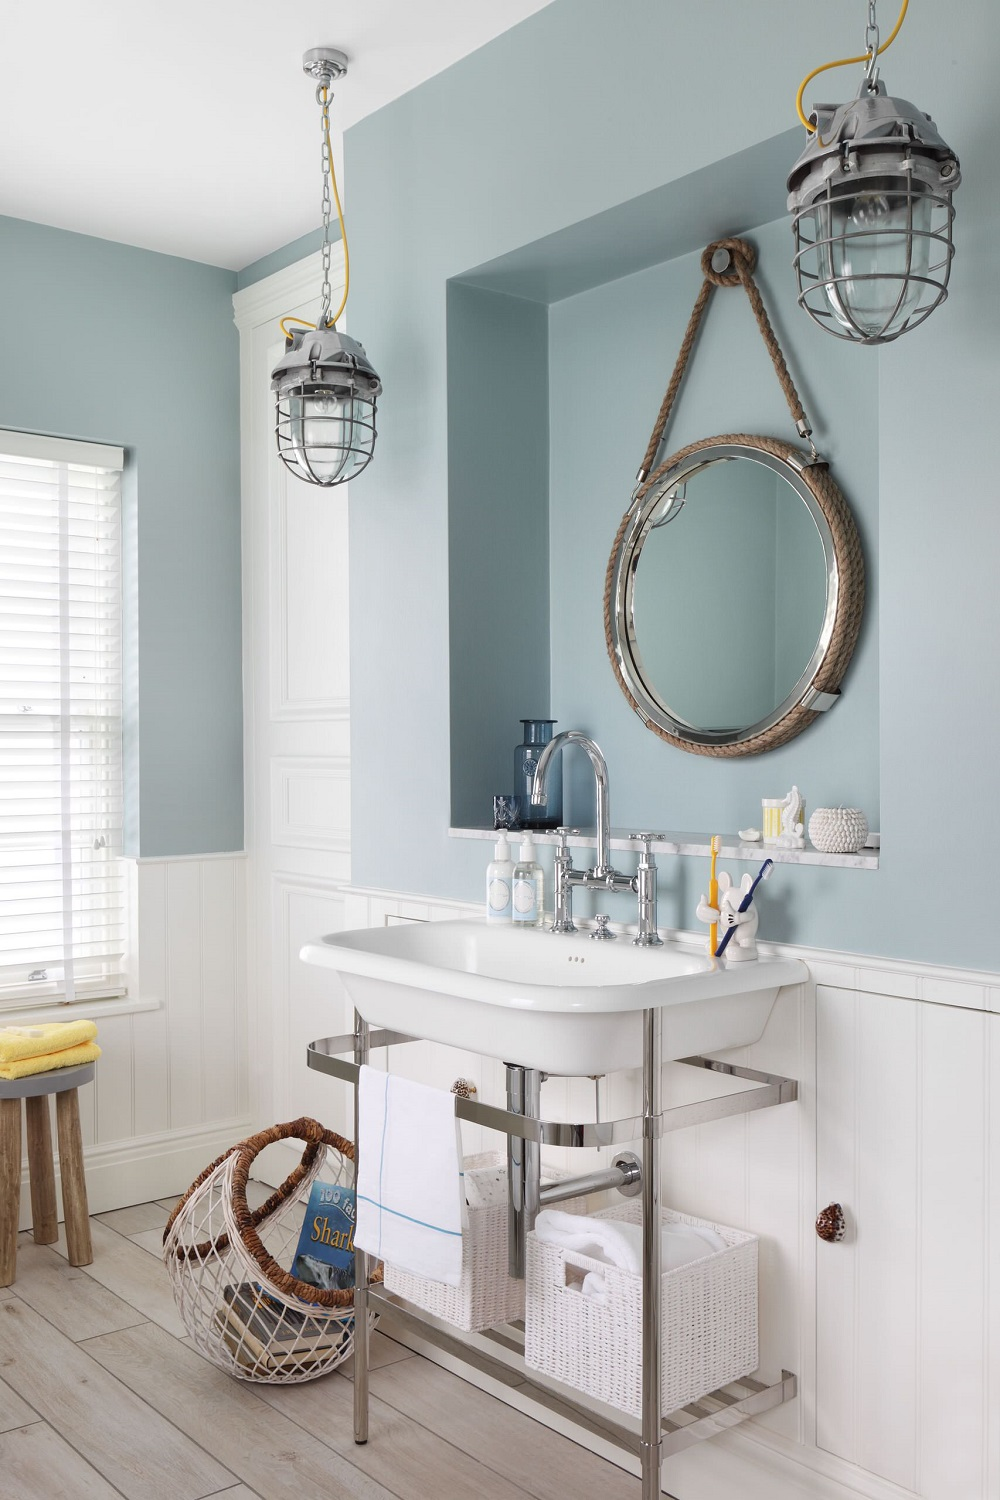 t1-78 The fantastic nautical bathroom decor and pictures that inspire you